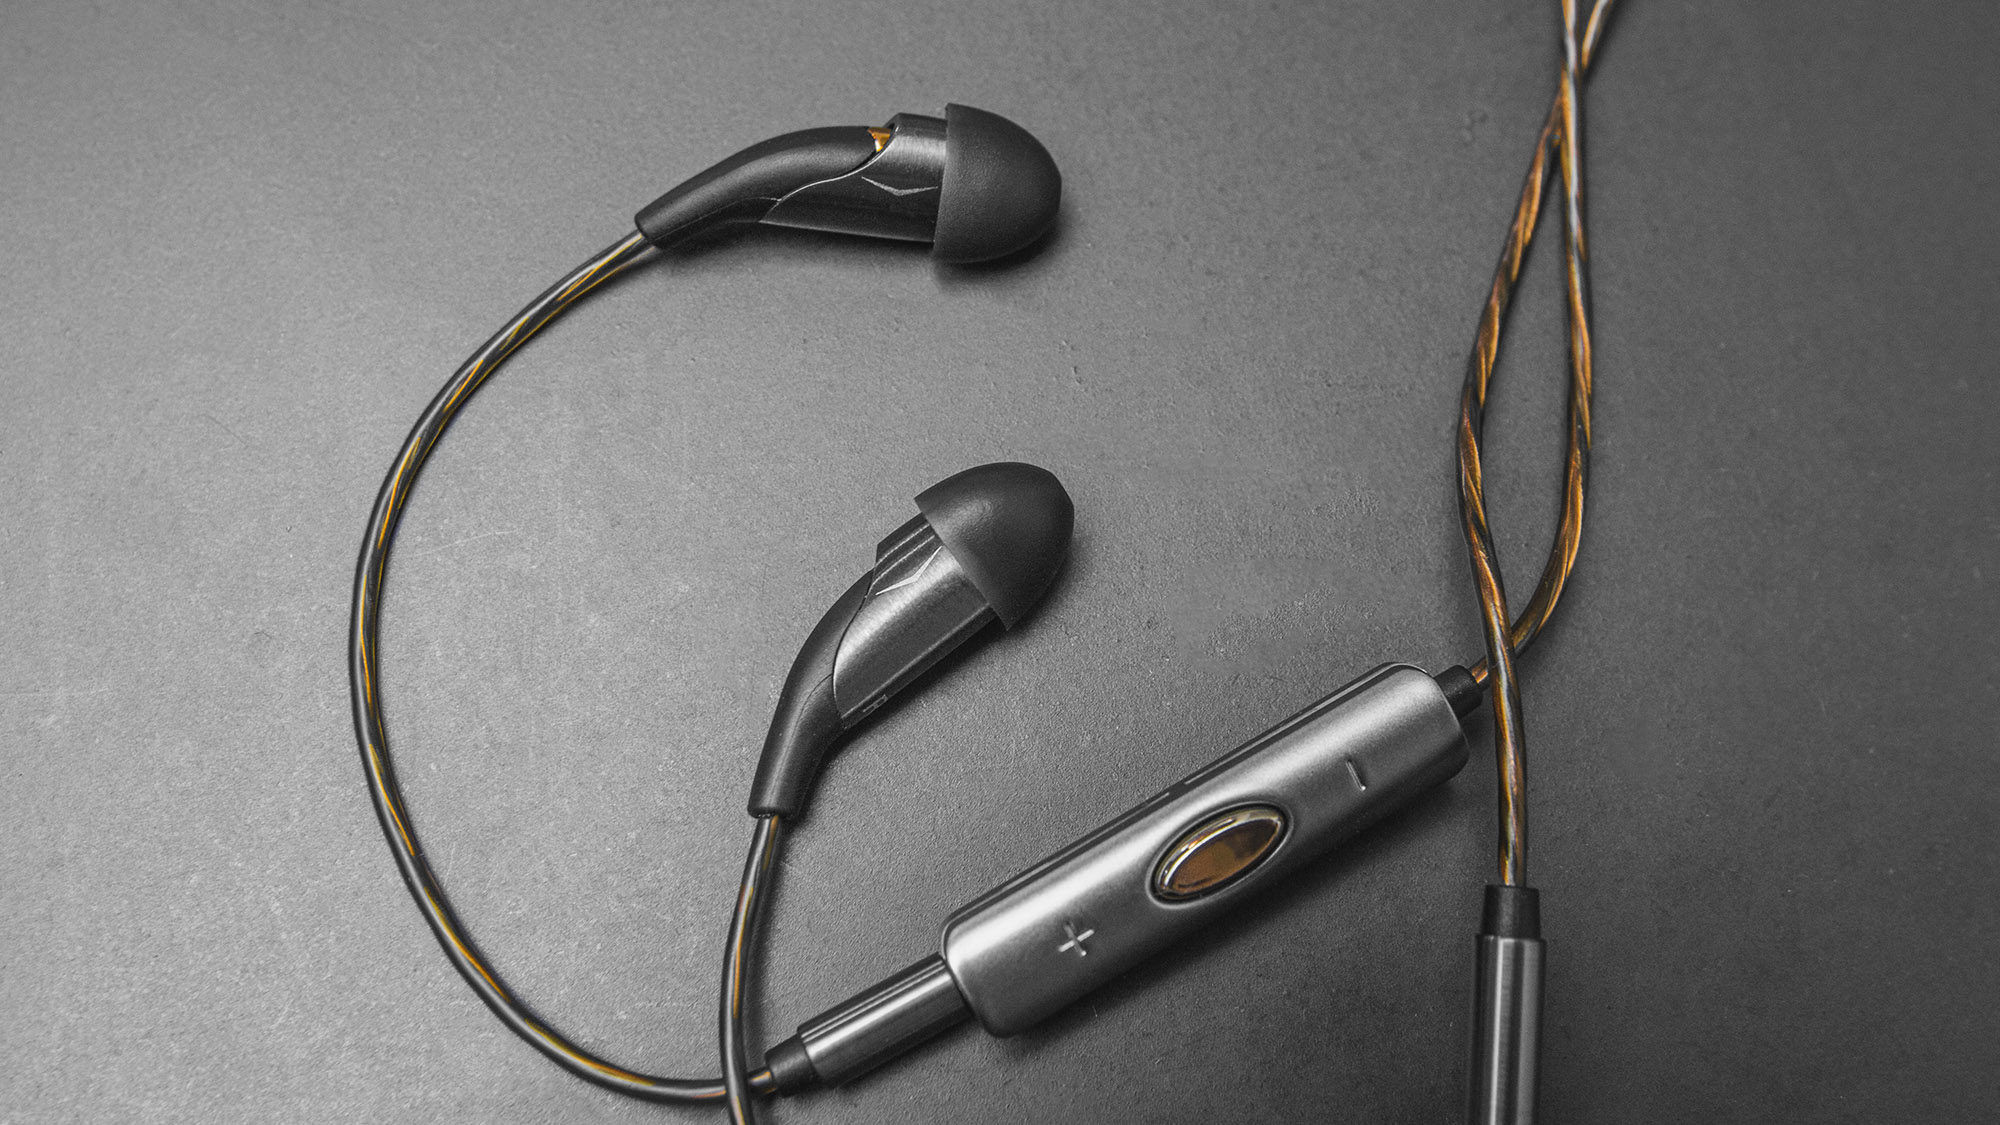 Klipsch Headphone Wiring Diagram Library Of Diagrams X Series Headphones Rh Com With Mic 3 Wire